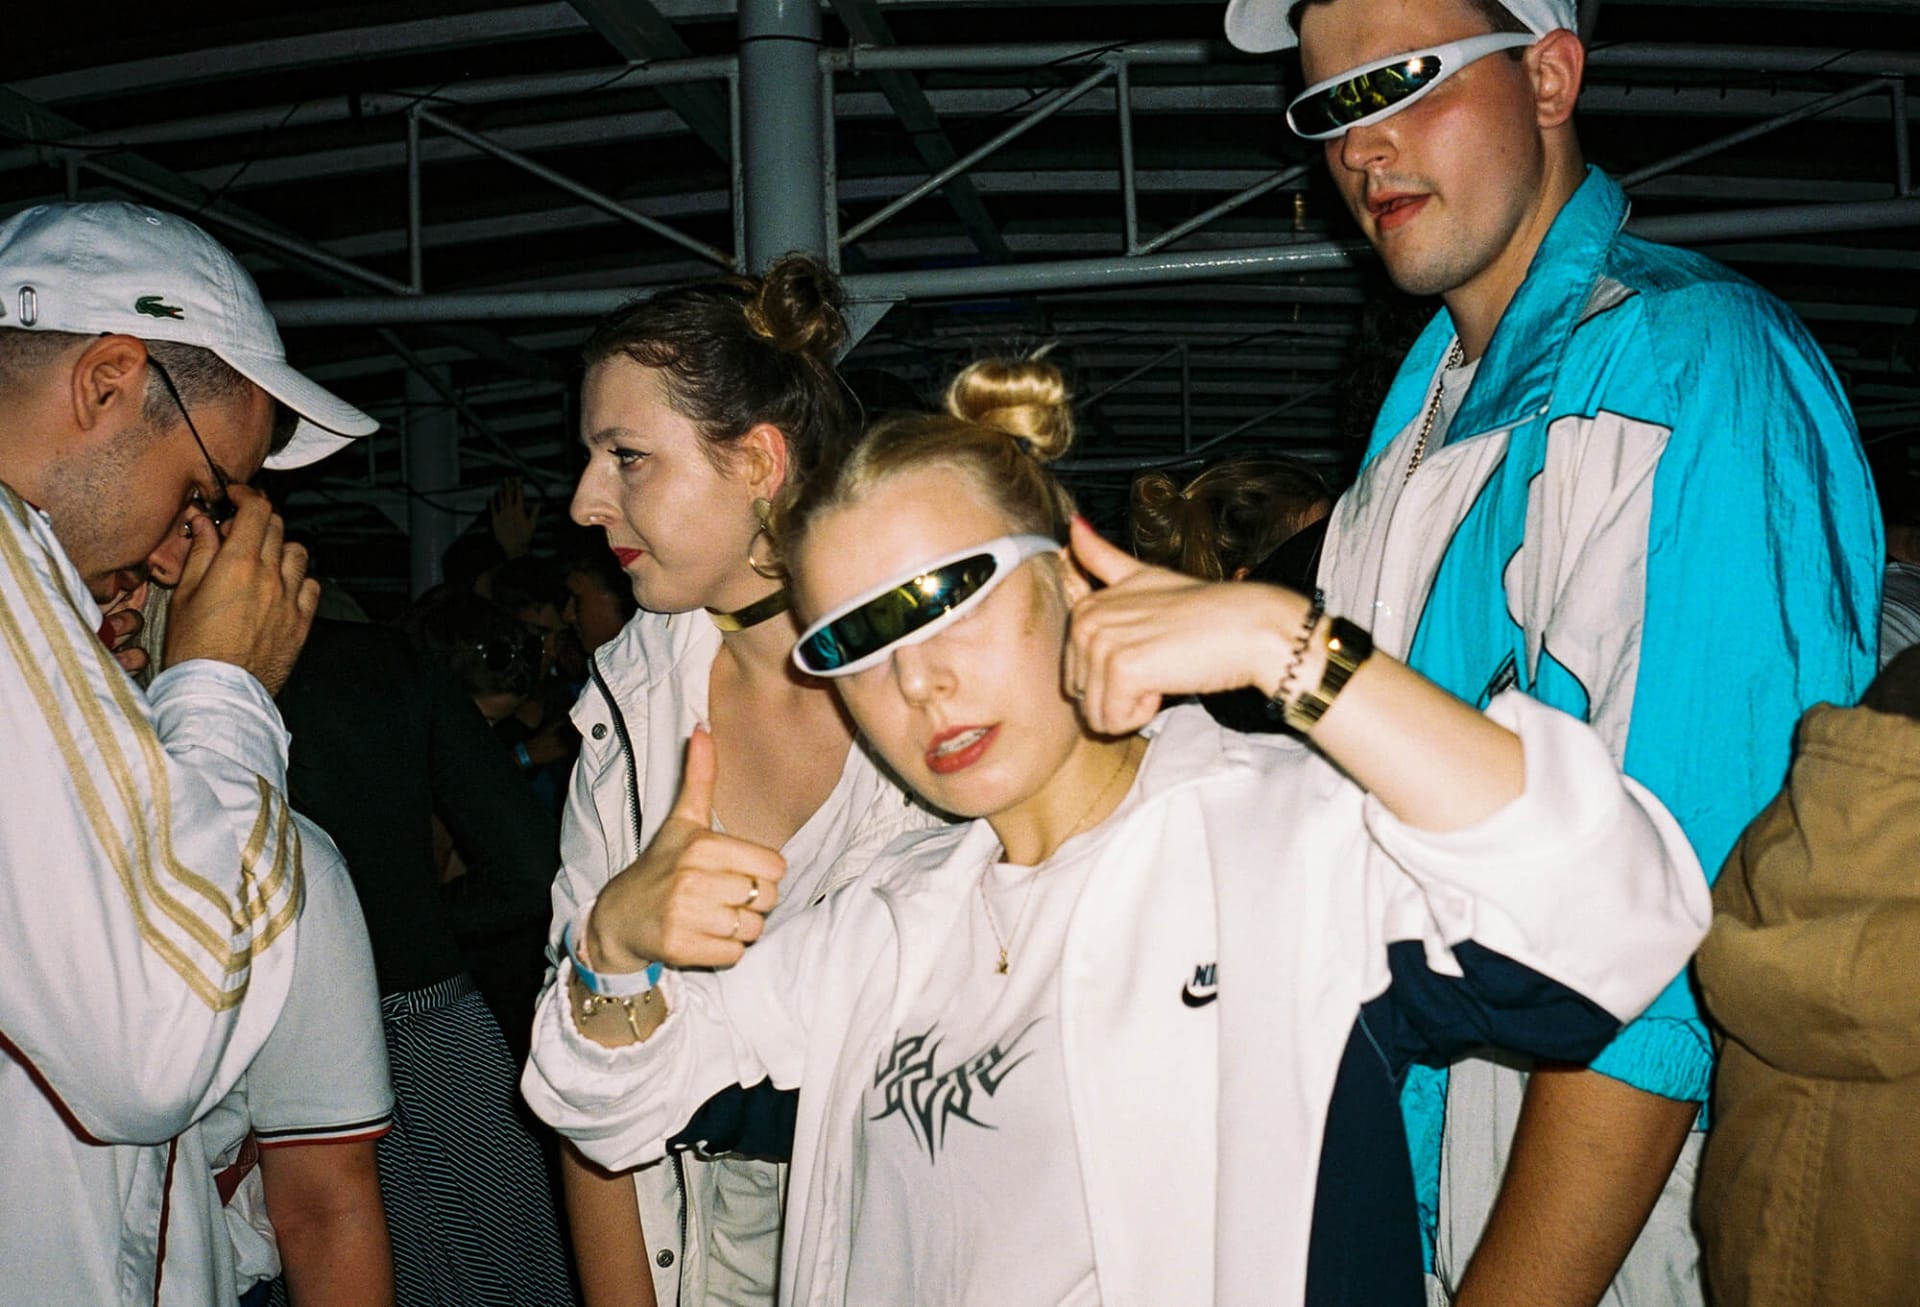 Listen To This Polish Gabber Mix Inspired By Our WIXAPOL SA Story